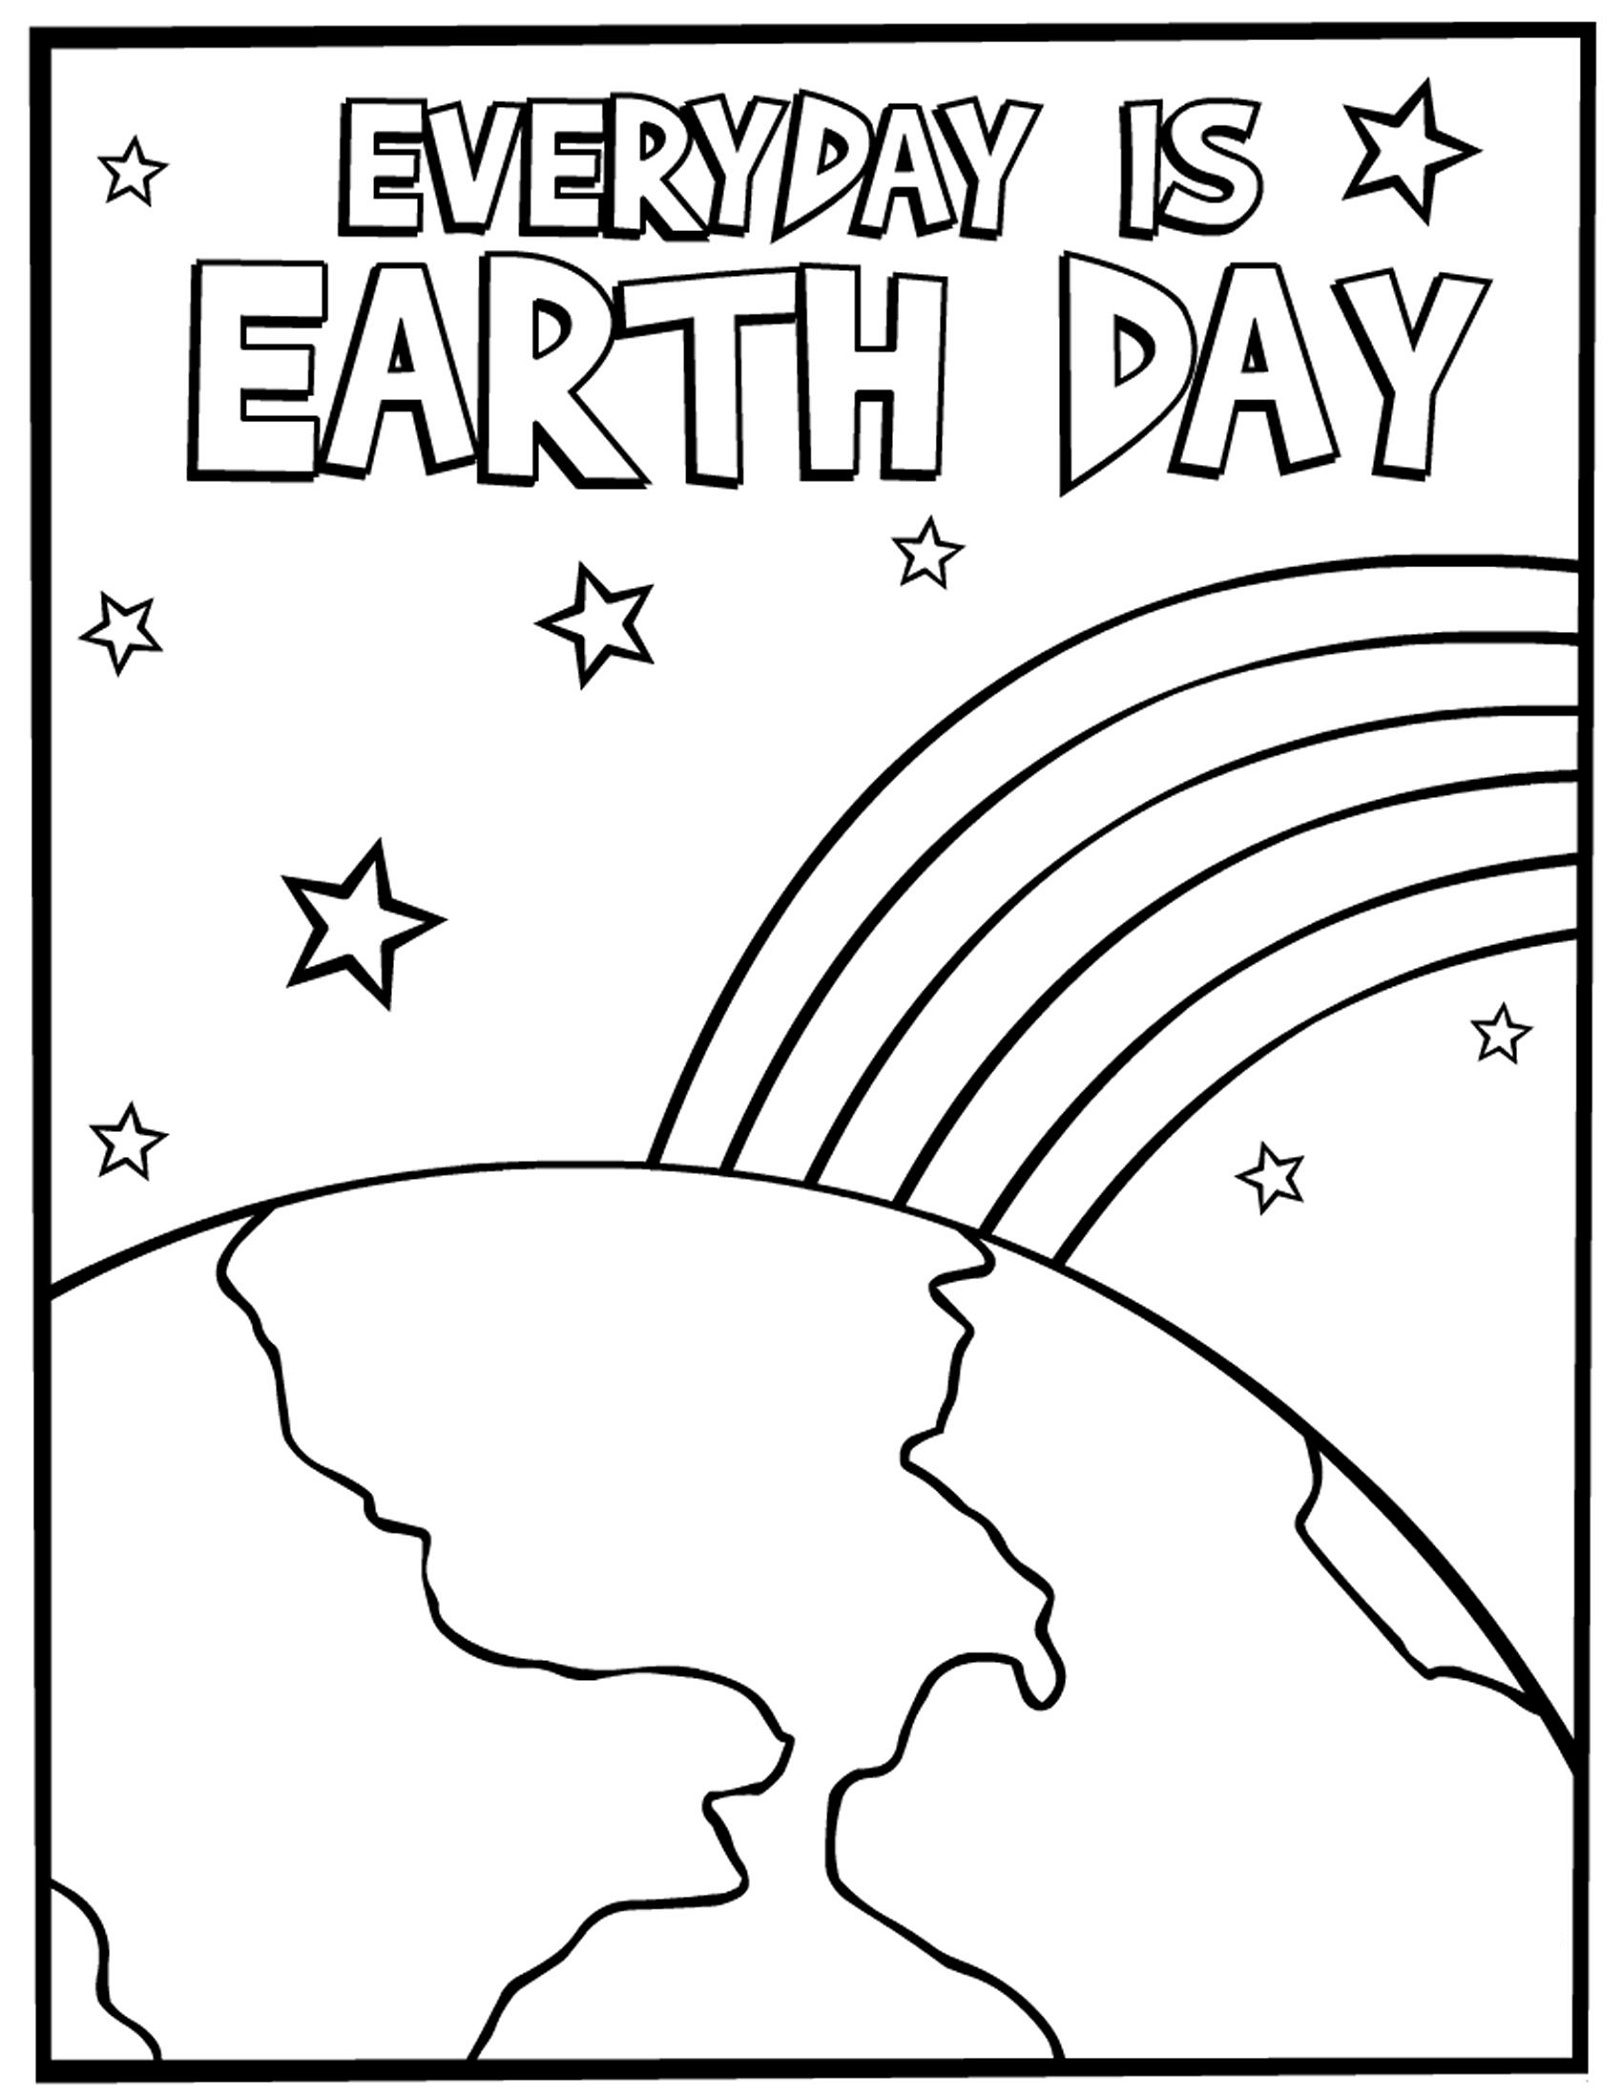 Earth Day Coloring Pages Various Styles